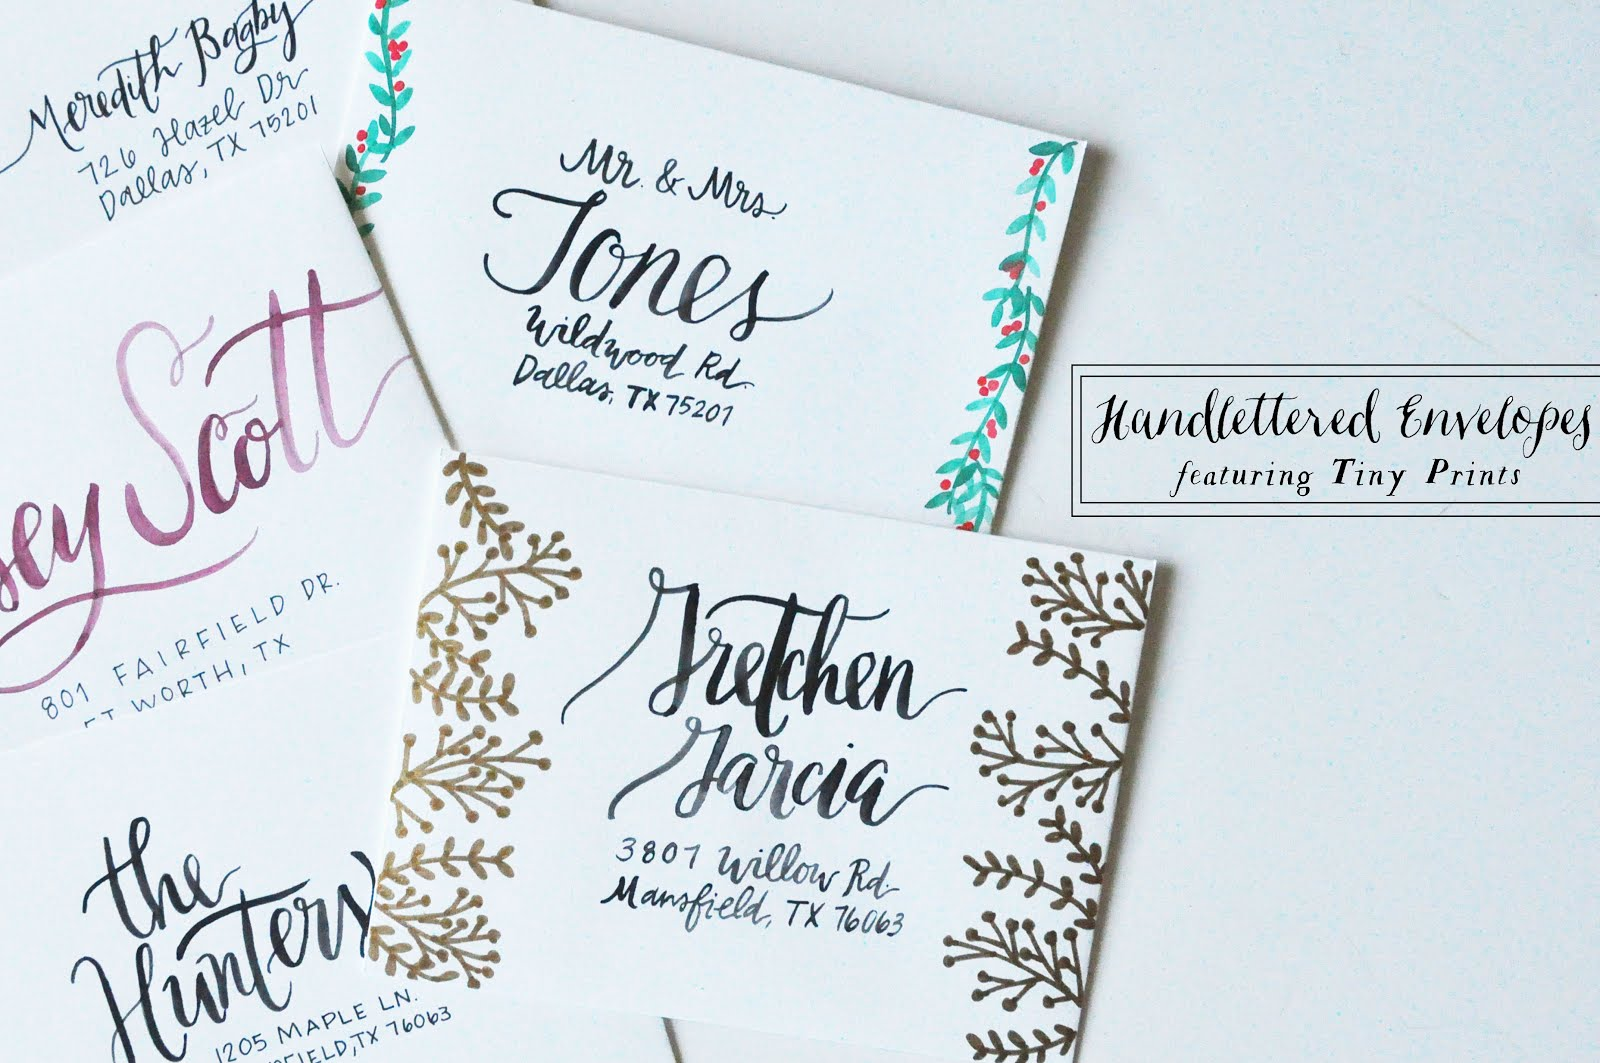 Pie N The Sky Hand Lettered Envelopes Featuring Tiny